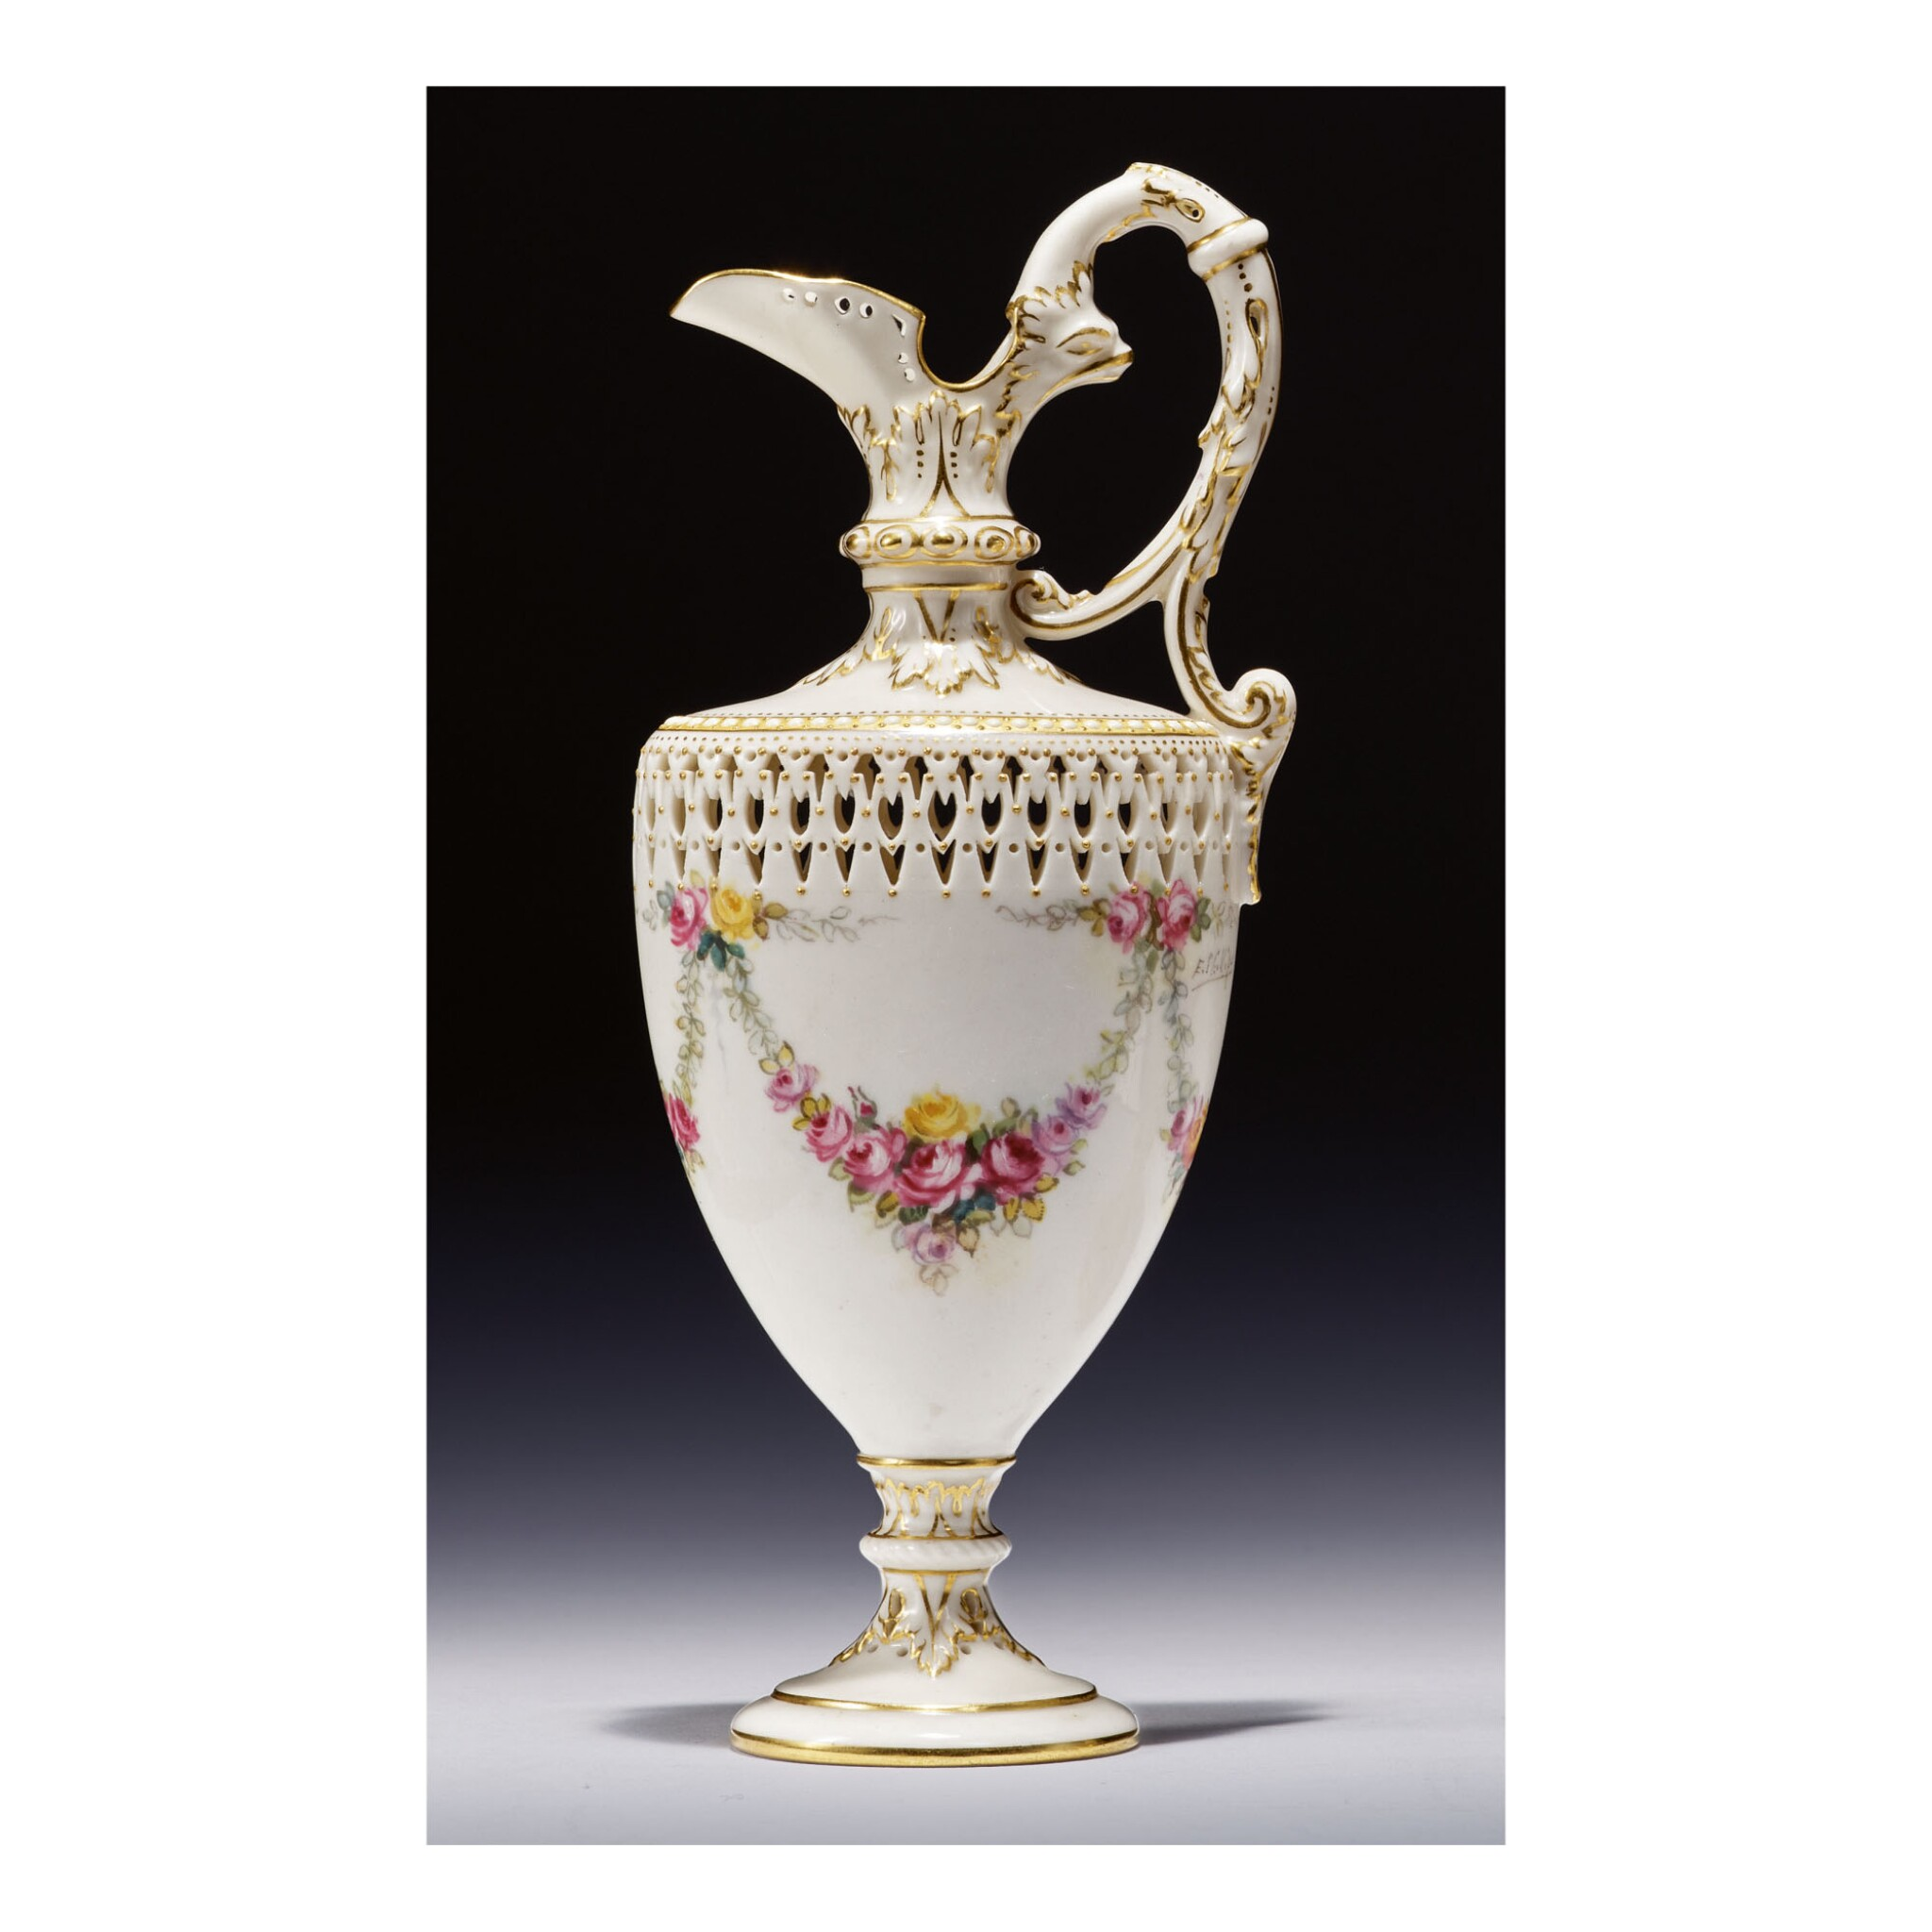 A ROYAL WORCESTER PORCELAIN RETICULATED EWER BY GEORGE OWEN PAINTED BY ERNEST PHILLIPS 1931